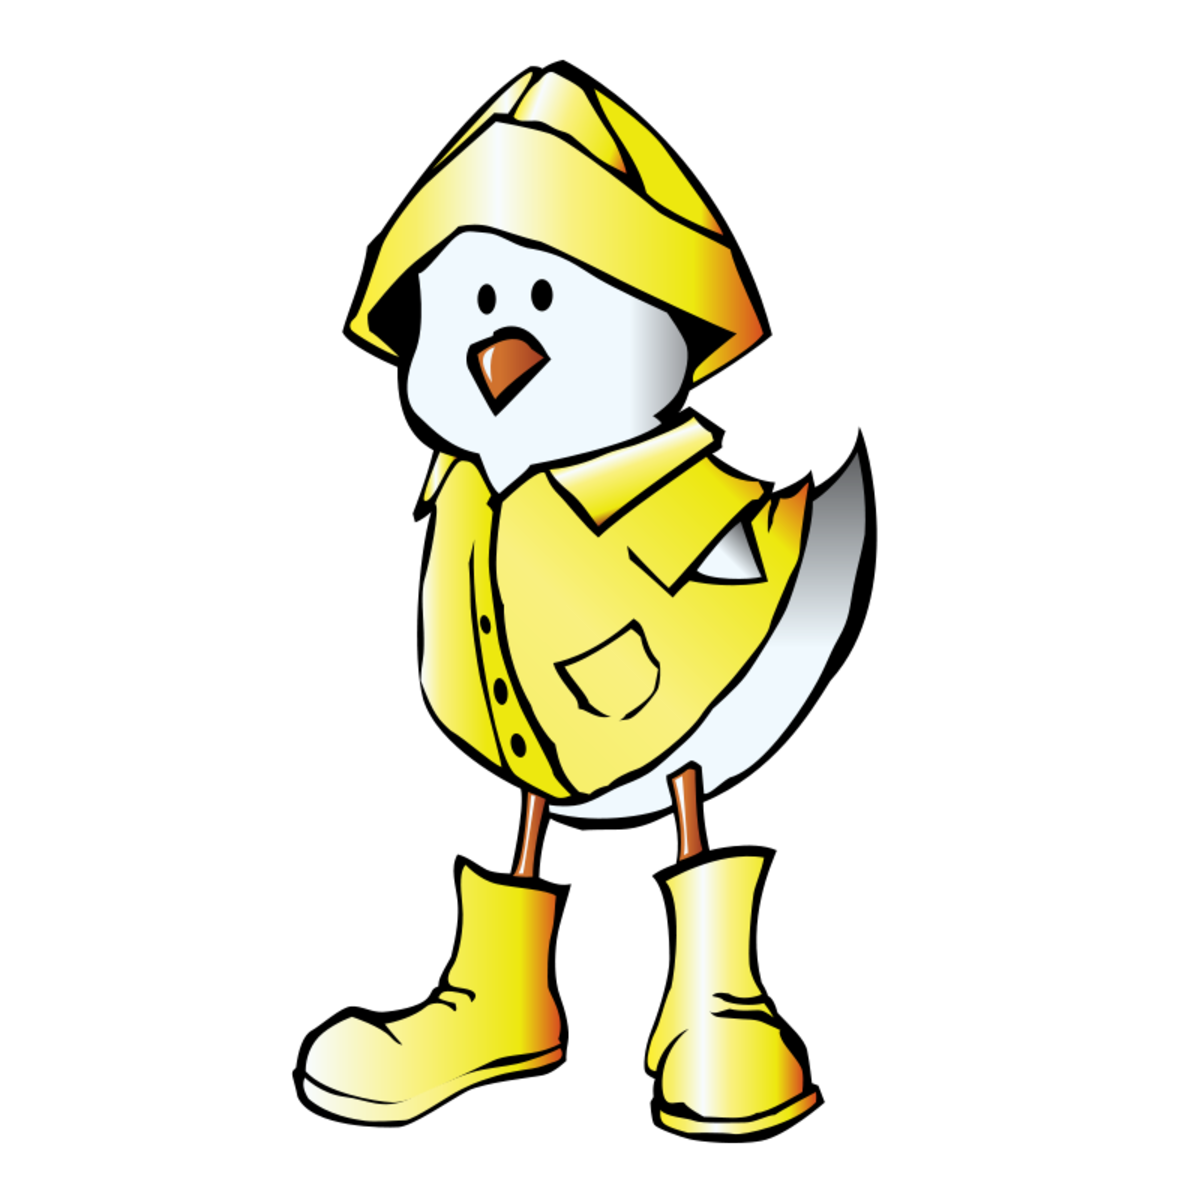 Cartoon Duck in a Raincoat